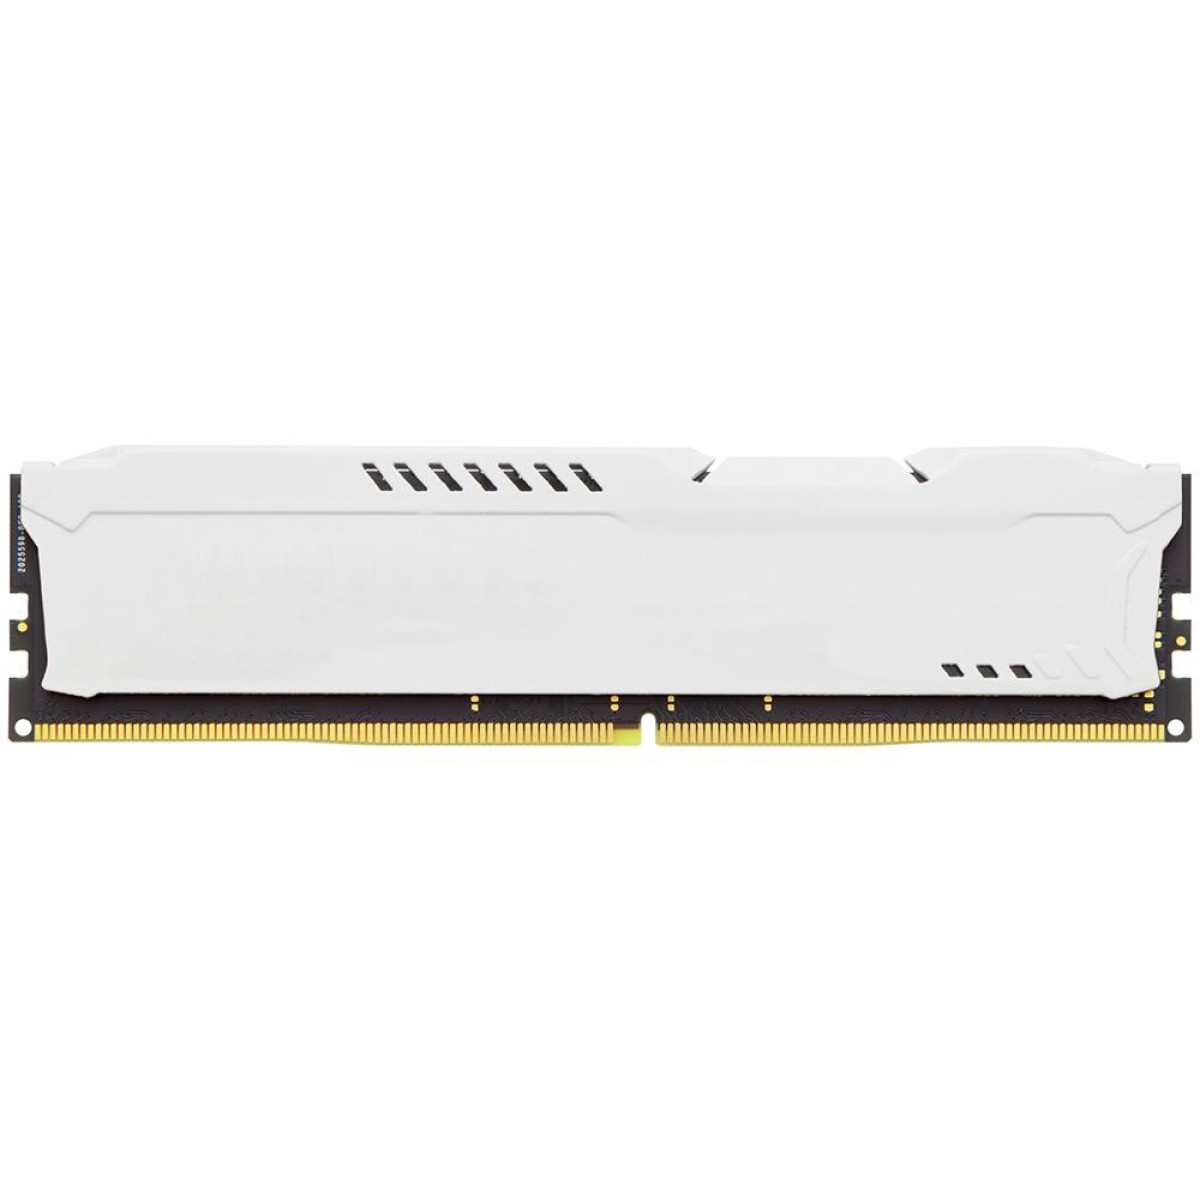 Memória DDR4 Kingston HyperX Fury, 8GB 2933MHz, White, HX429C17FW2/8